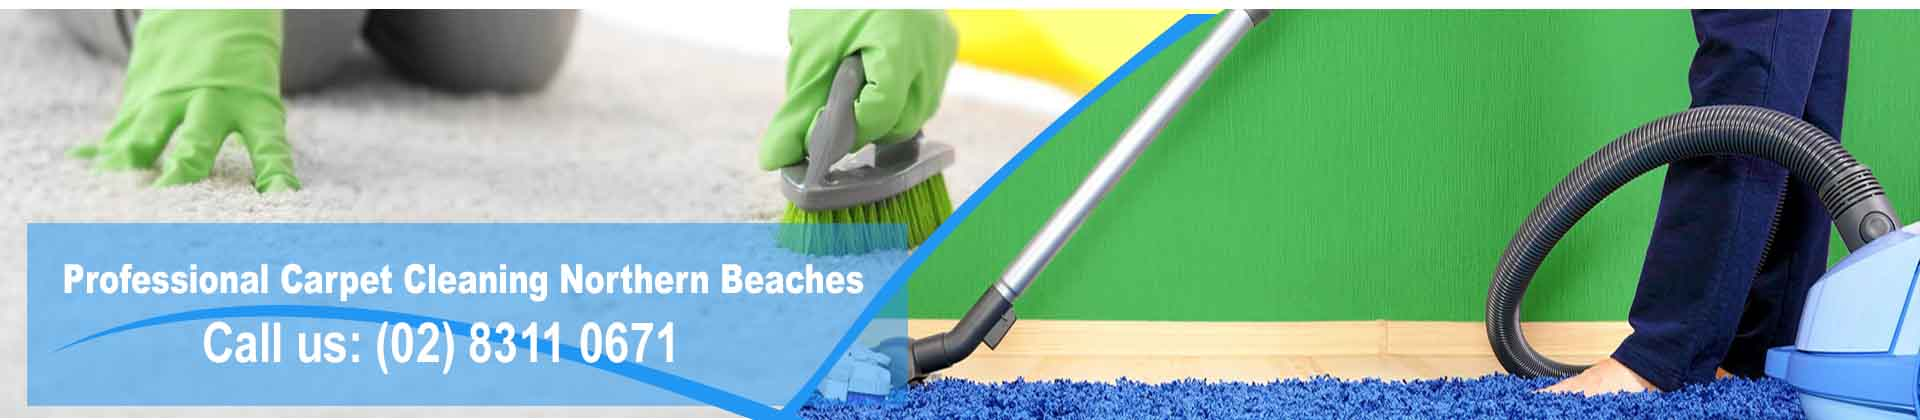 Professional Carpet Cleaning Northern Beaches